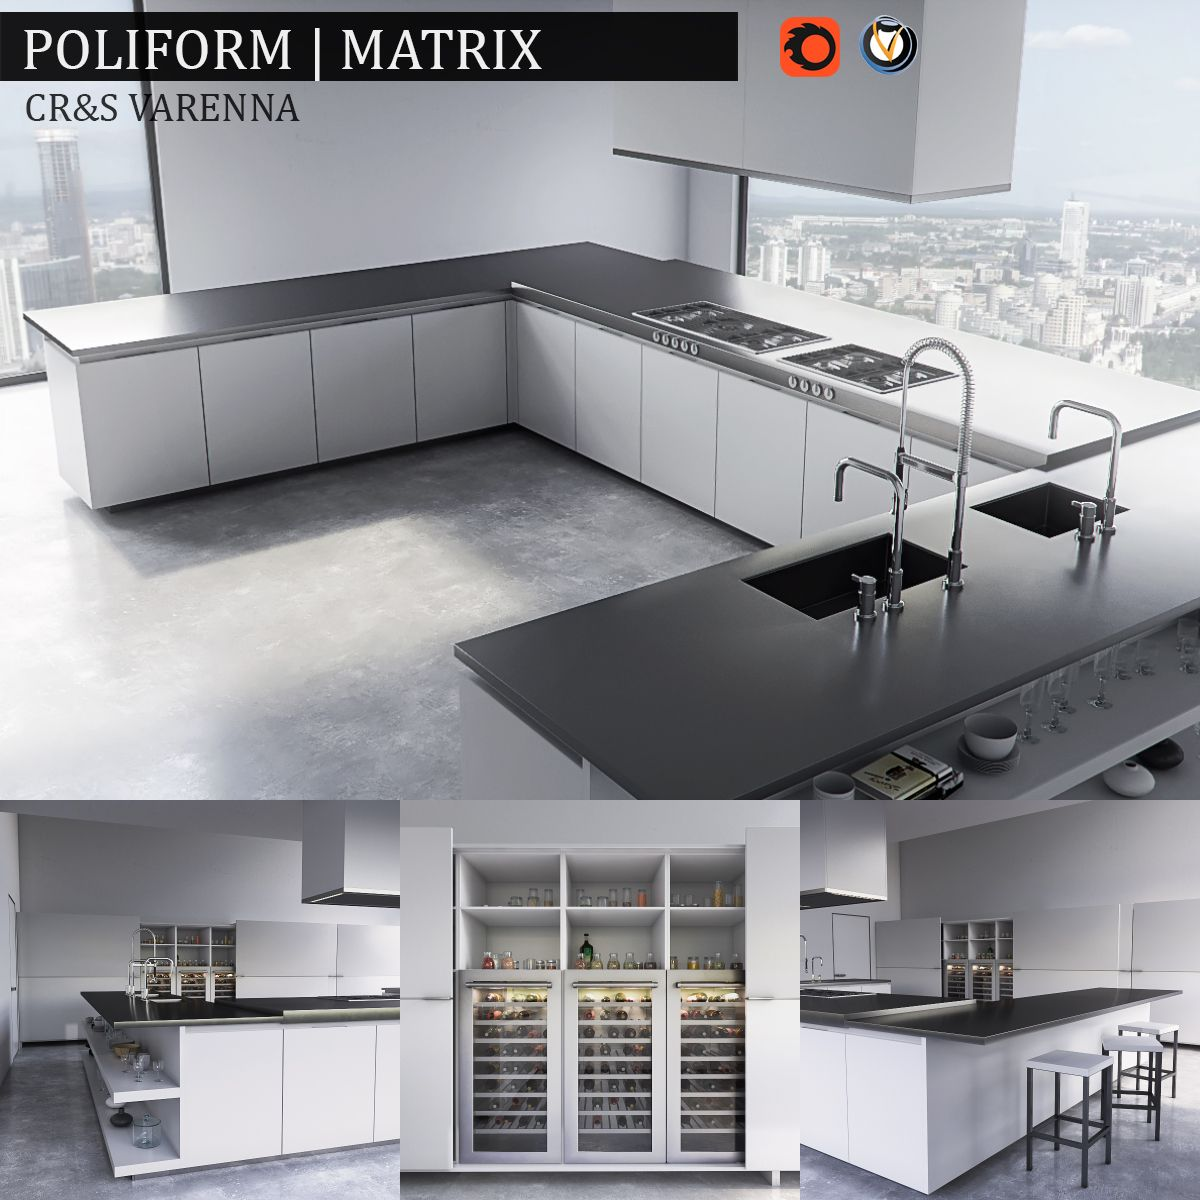 Wonderful Kitchen Varenna Matrix Render : Vray, Corona Archives Included: Materials  (mat) Corona, Vray, Textures, FBX, Scene 3ds Max 2014 Vray